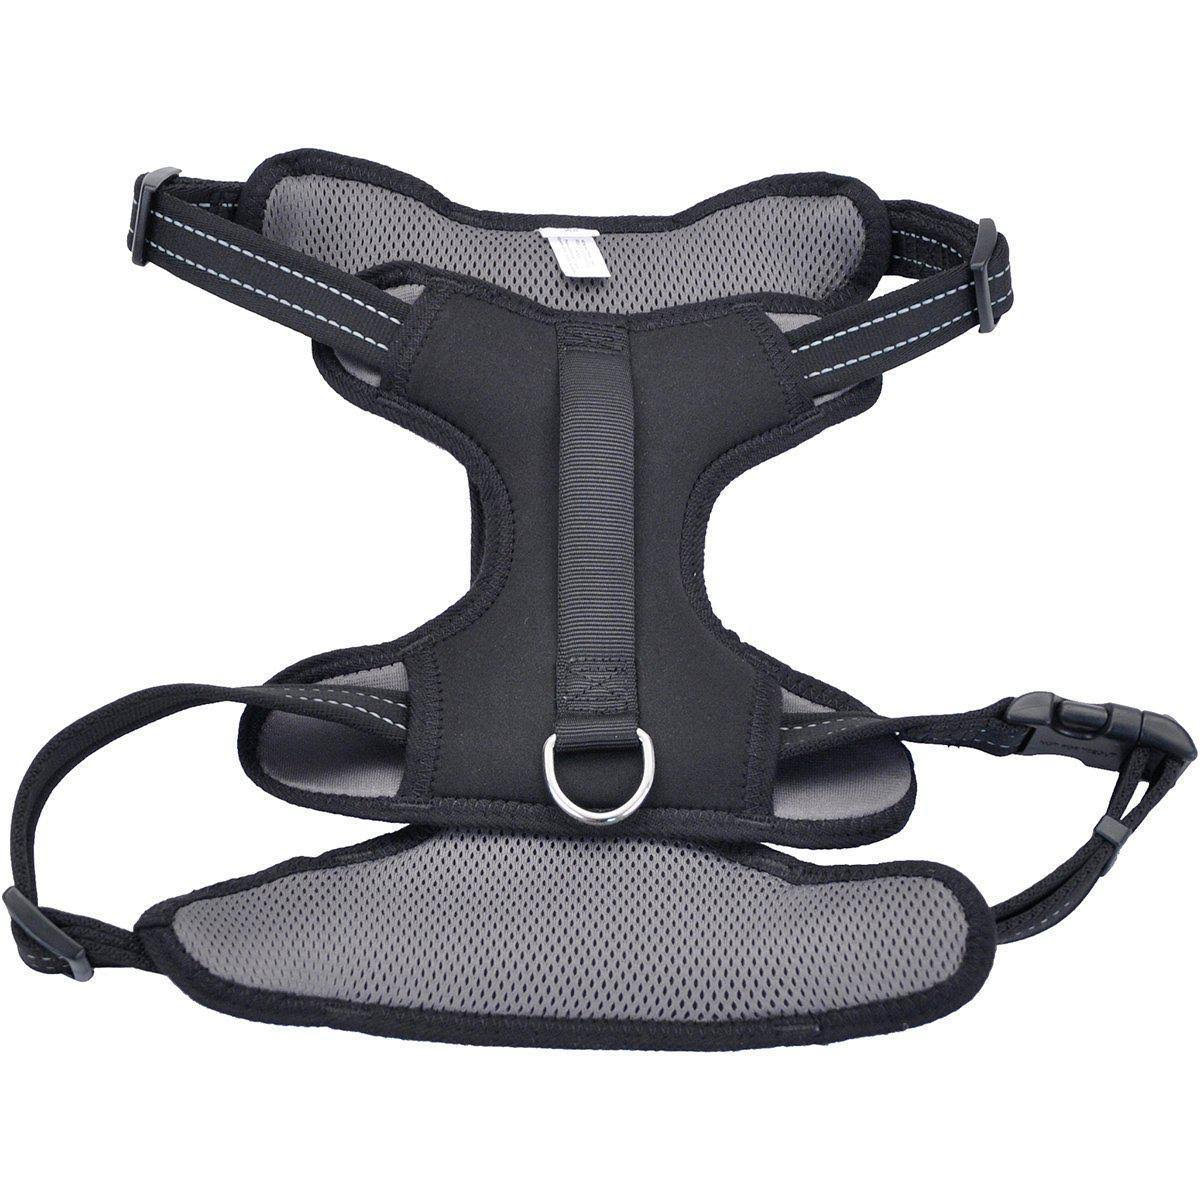 Coastal Reflective Control Handle Harness - Black, X-Large